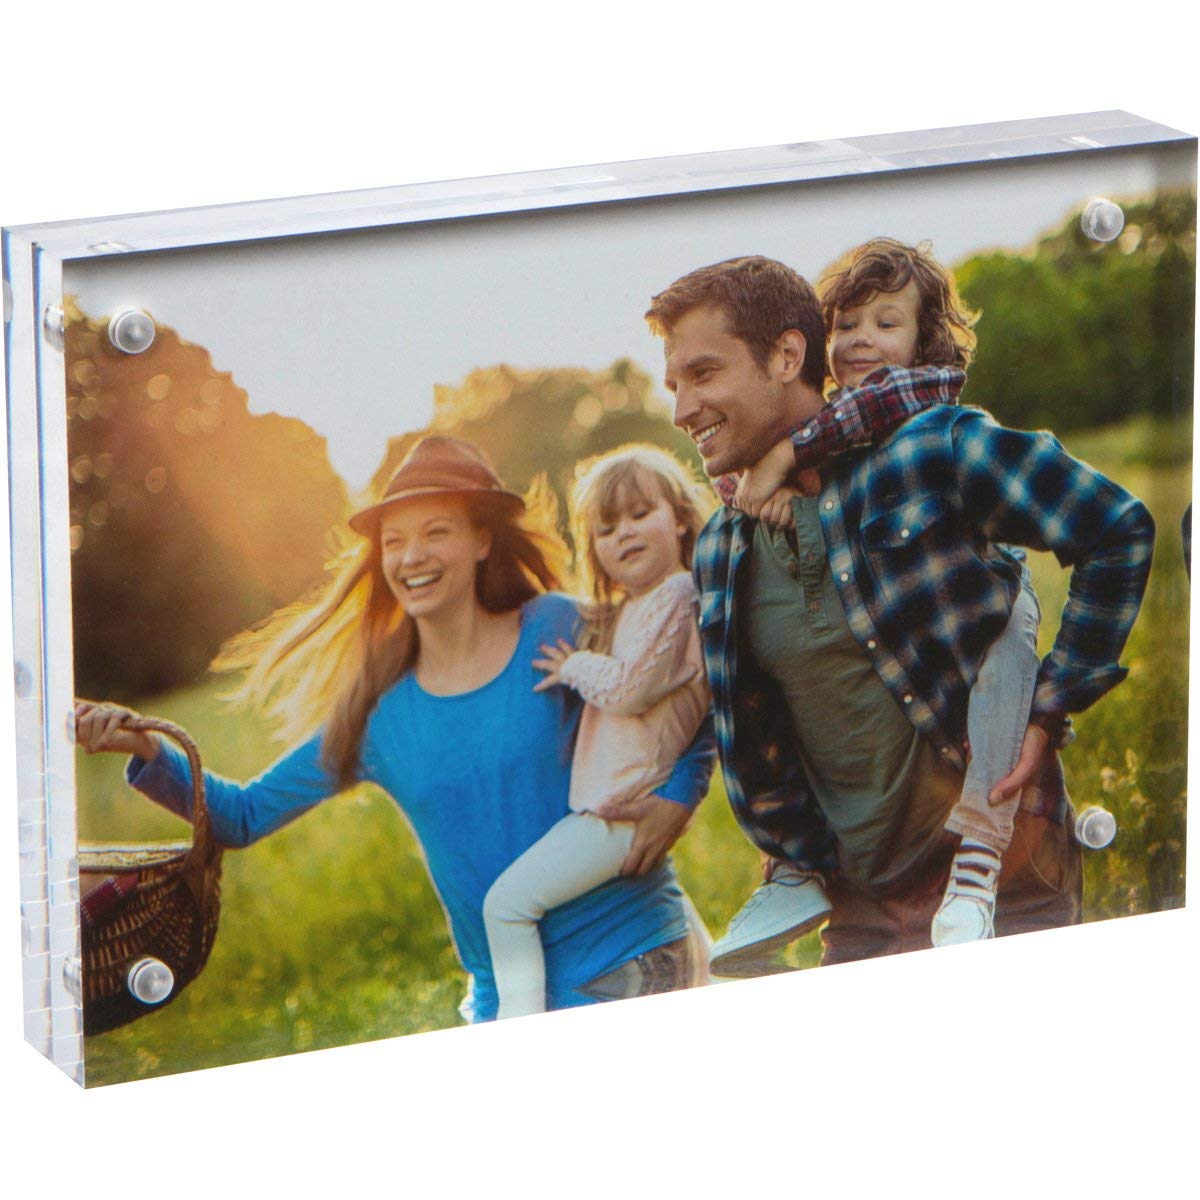 "SimbaLux Magnetic Acrylic Picture Photo Frame 4x6 inches, Clear Glass Like, Double Sided Frameless Desktop Floating Display, Free Standing, Easy Change, for Family, Postcards, 4"" by 6"", 2cm Thick"